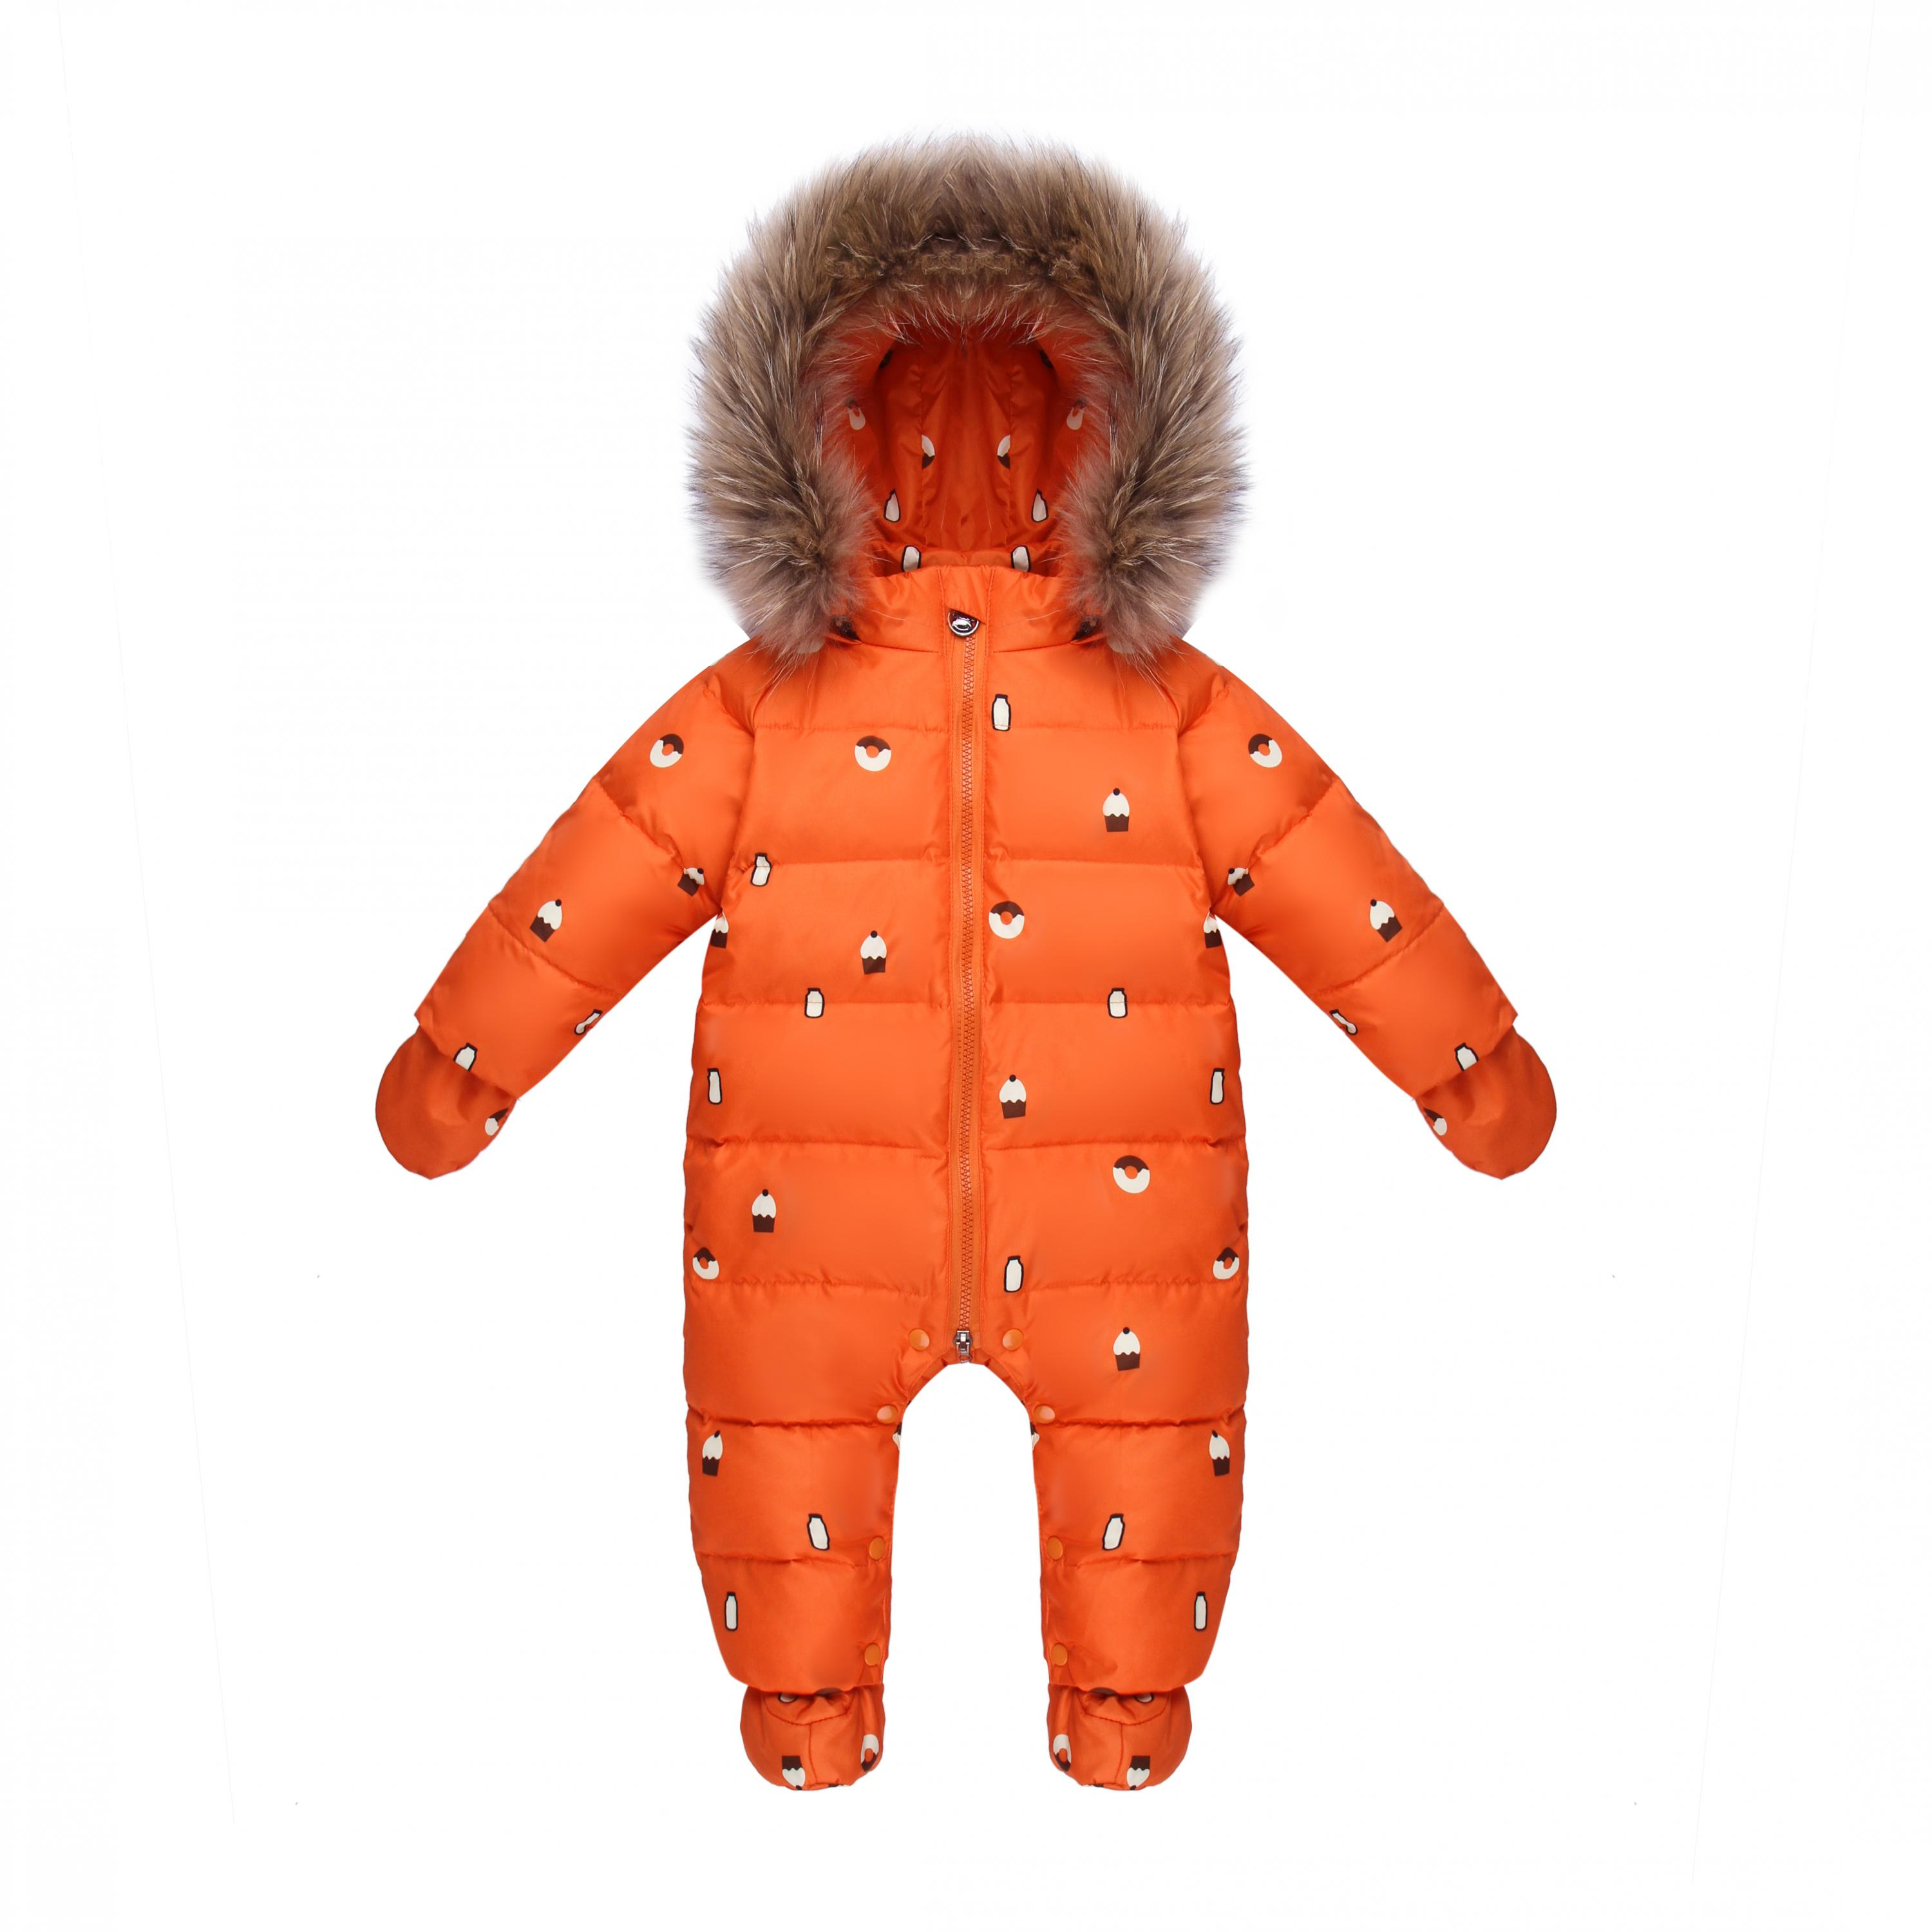 baby warm clothes Duck Down Rompers Snowsuit Outerwear Boy Snow Wear kids Jumpsuit Girl Real Fur Clothing Winter Overalls baby down hooded jackets for newborns girl boy snowsuit warm overalls outerwear infant kids winter rompers clothing jumpsuit set